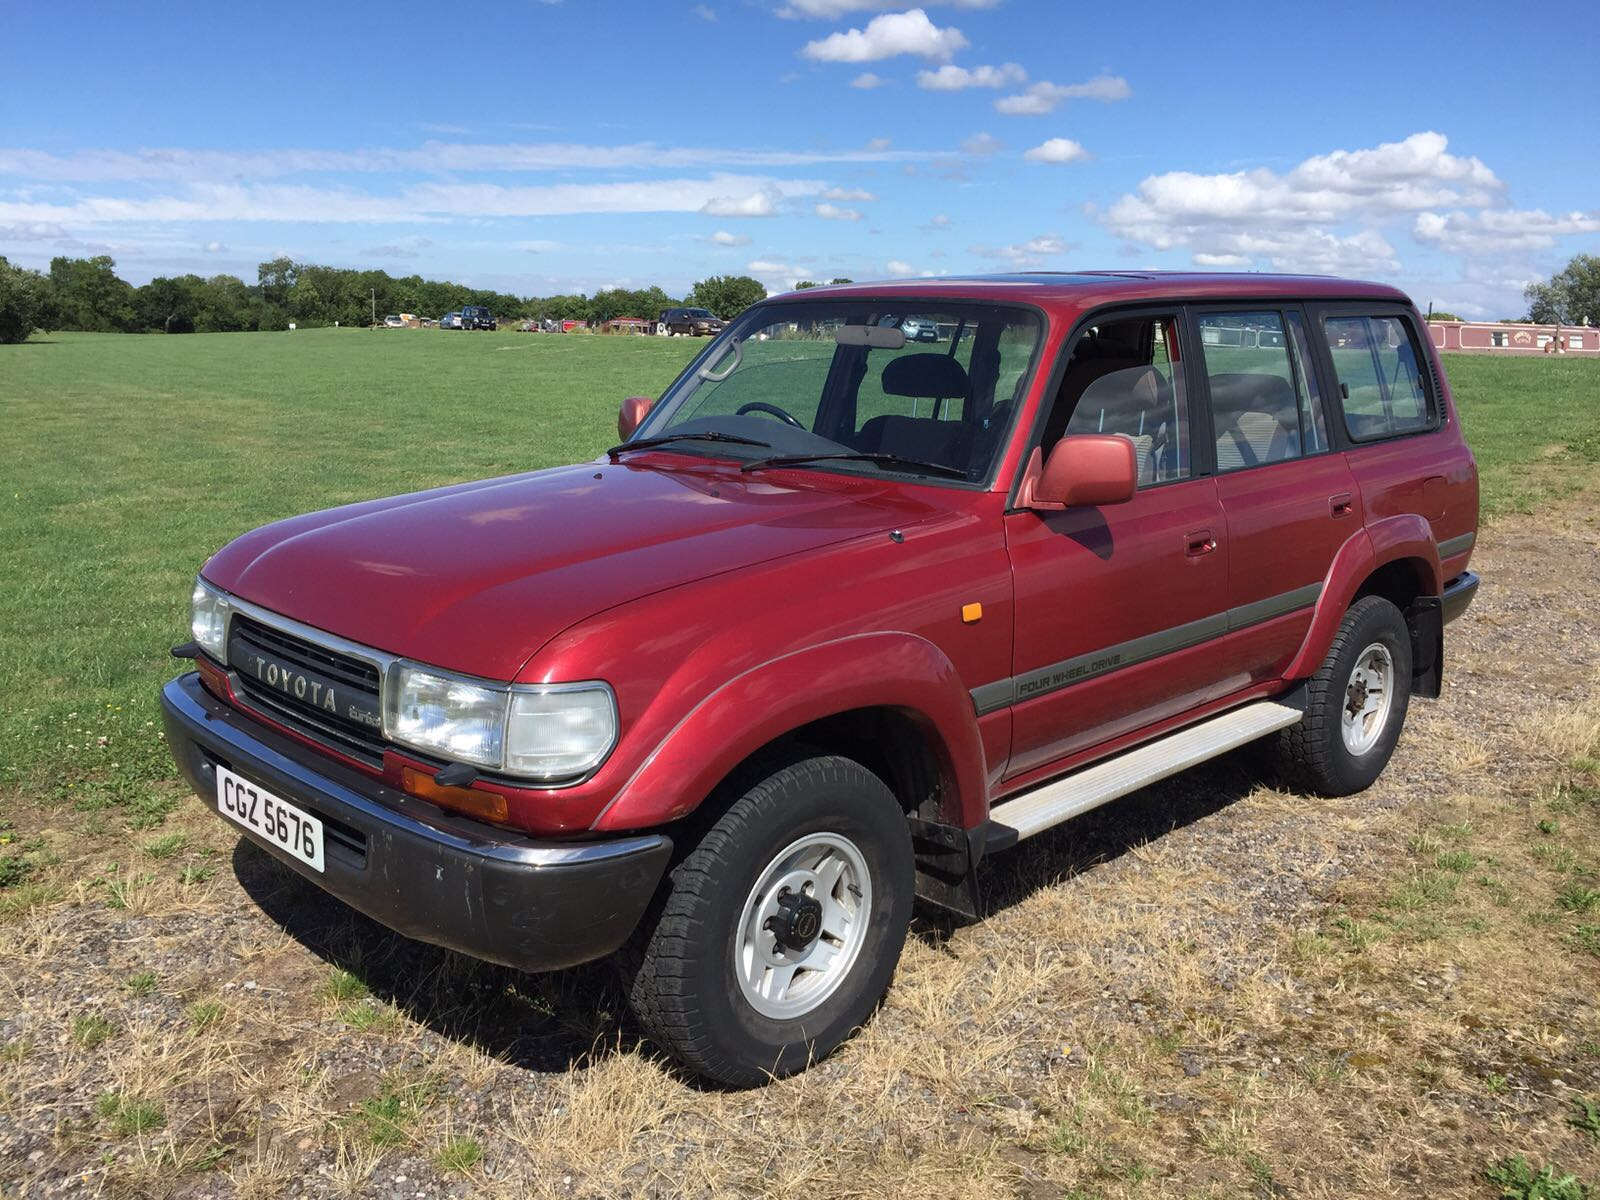 1992 Toyota Landcruiser HJ80- 80-series turbo diesel , ready